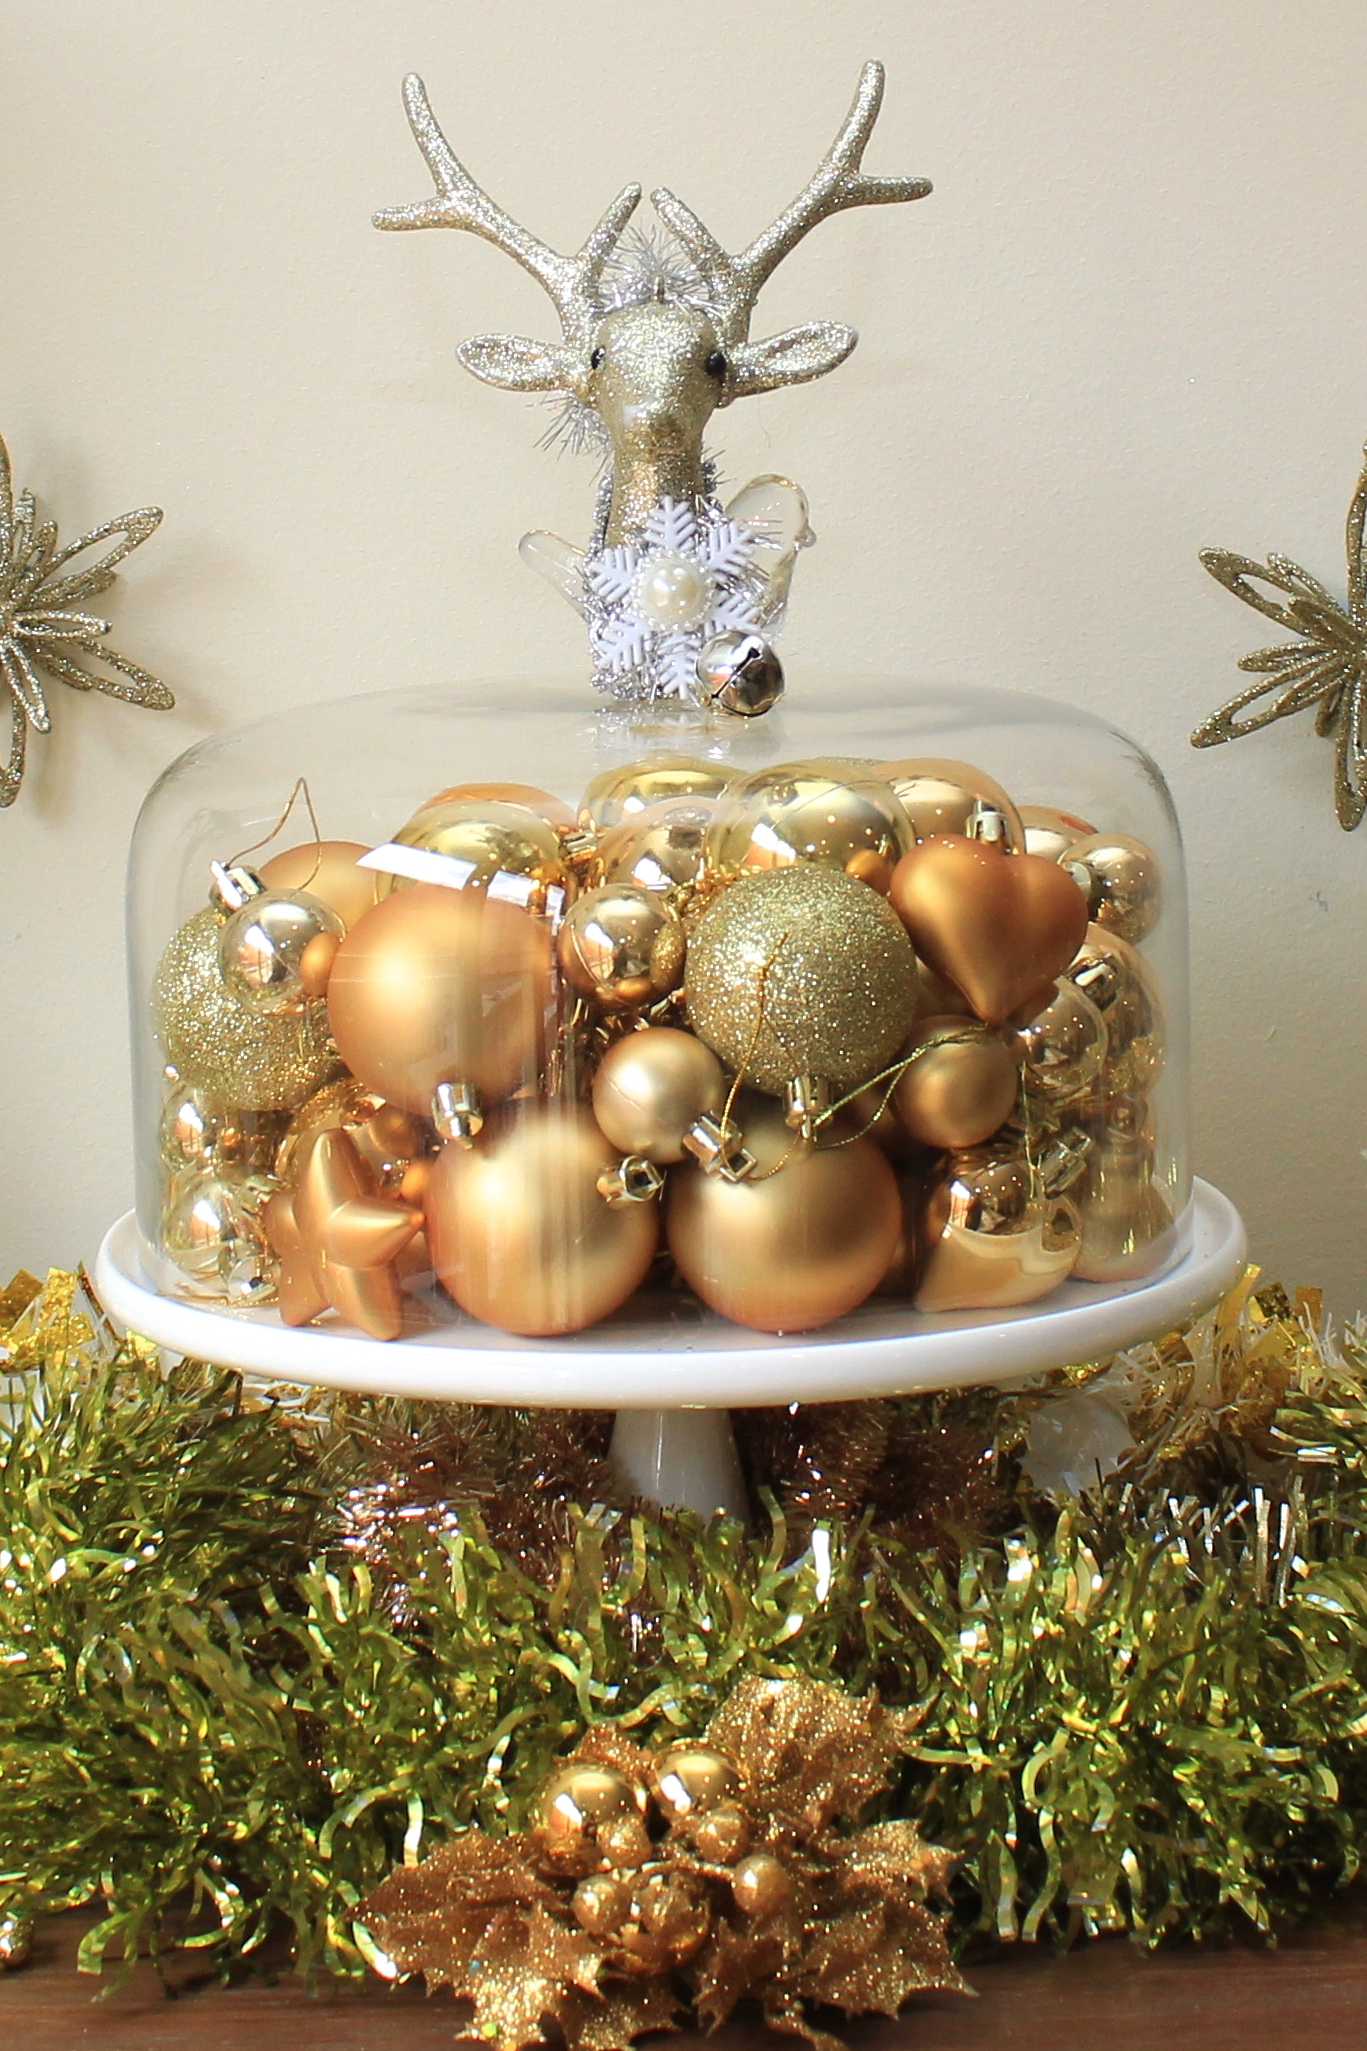 Christmas cake dome with bauble decorations